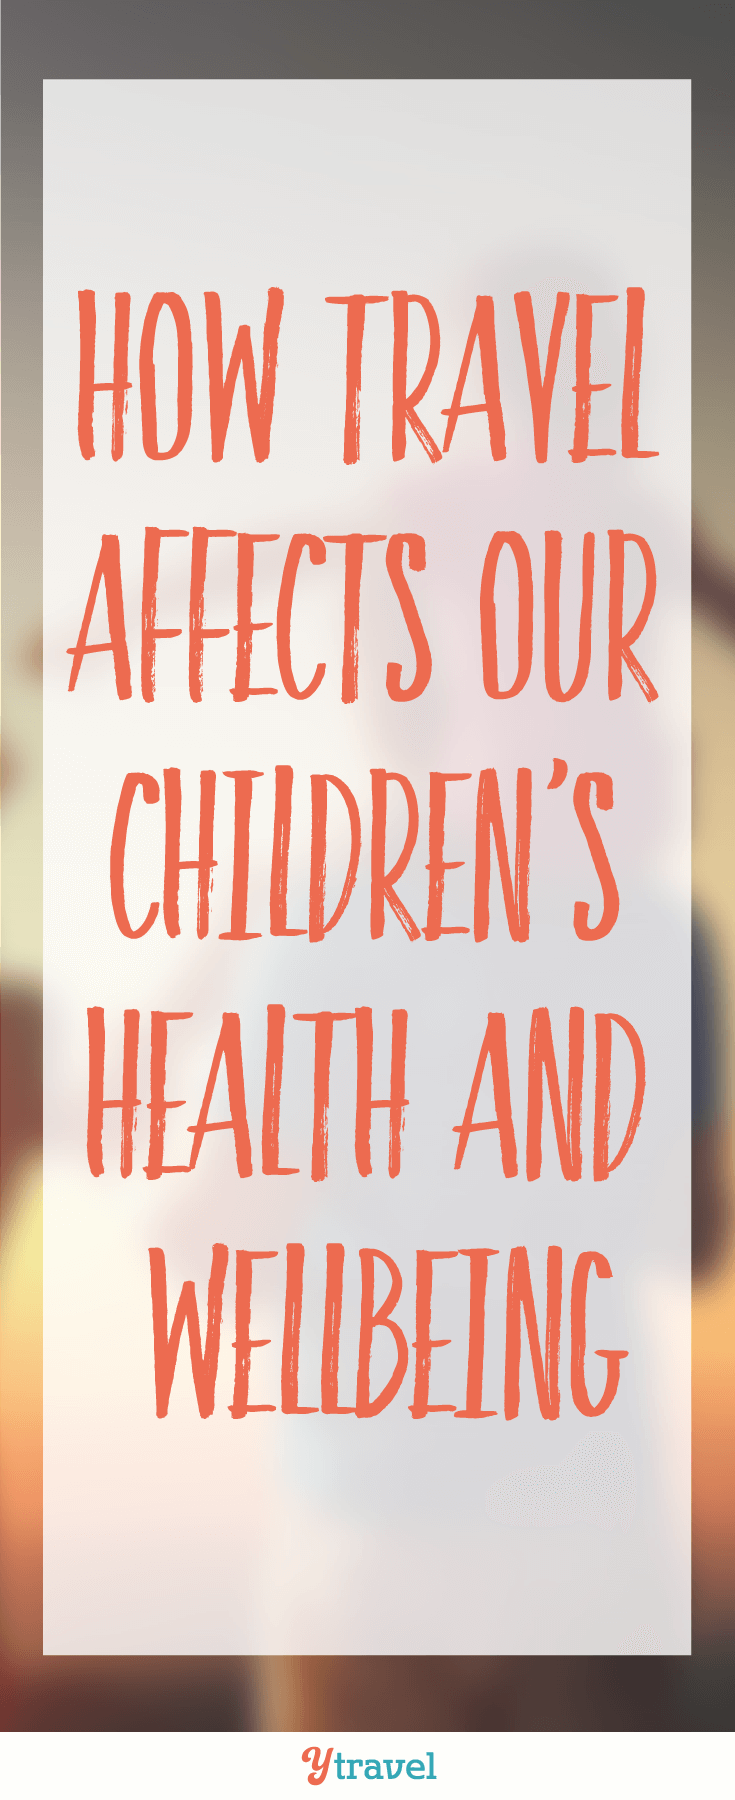 How travel affects our children's health and wellbeing. Discover why travel has so many benefits to a child's life.